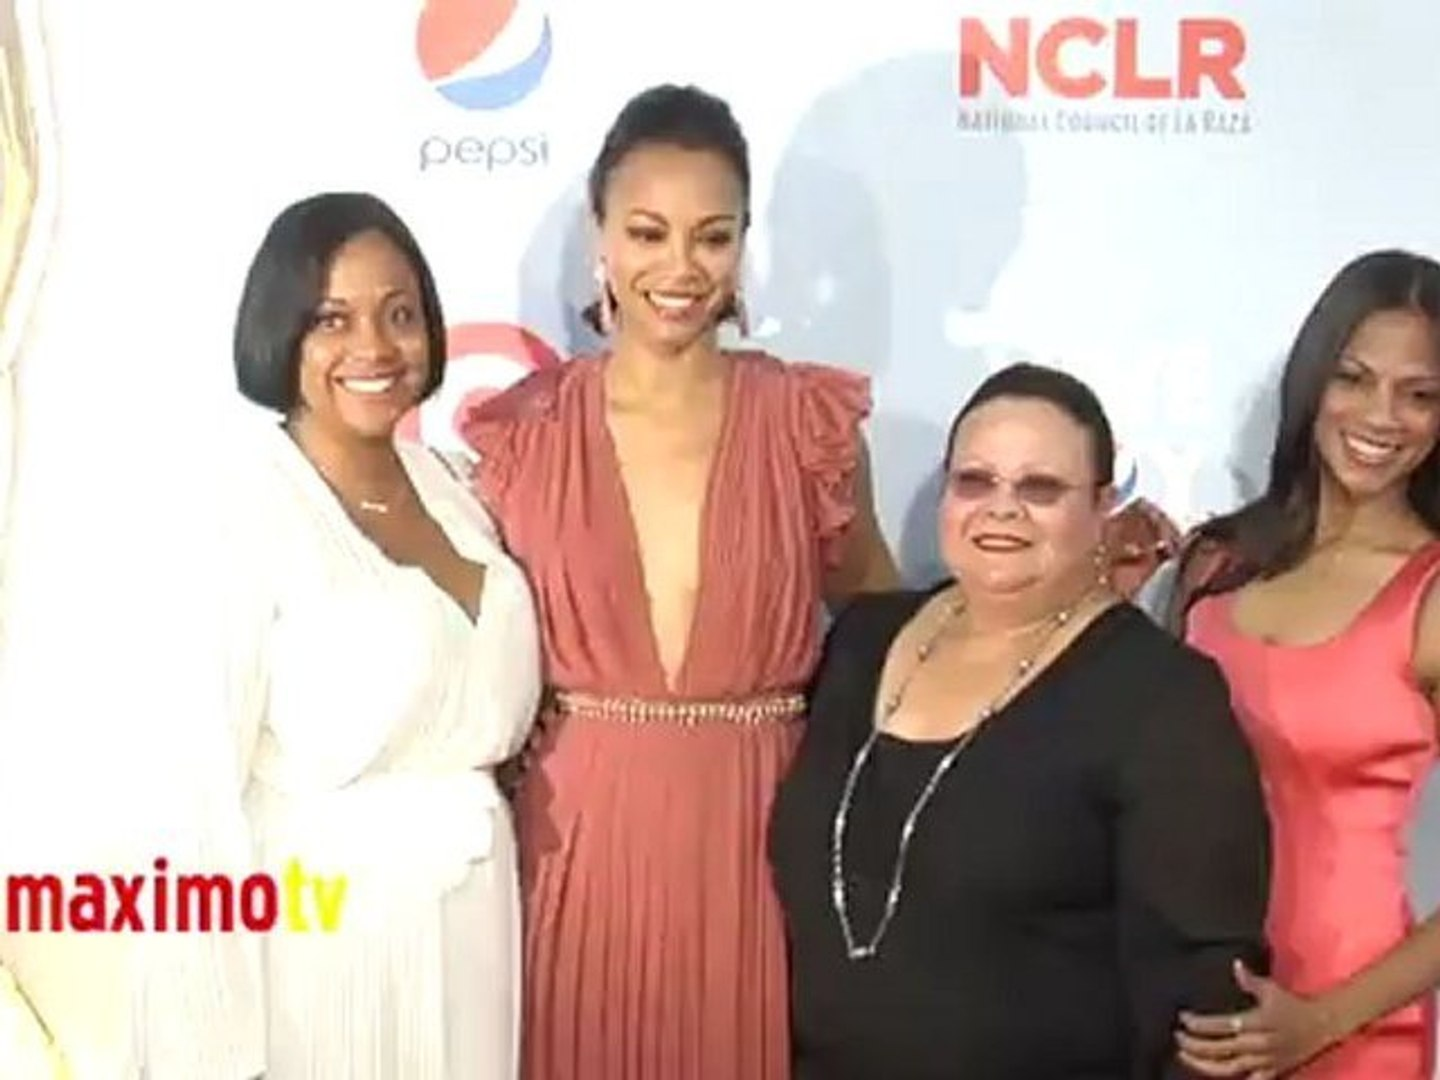 Zoe Saldana and Family ALMA Awards 2012 Arrivals